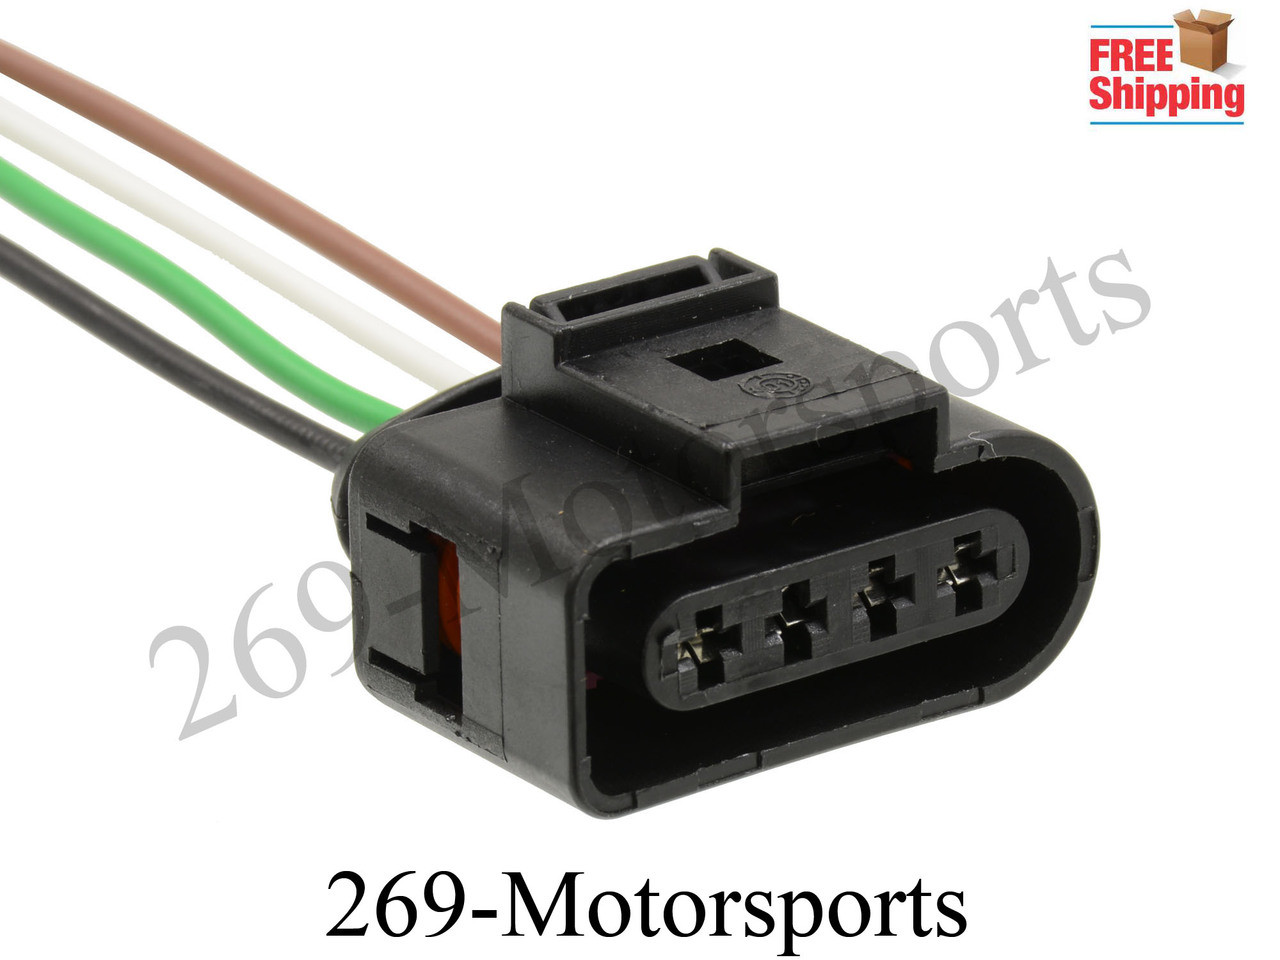 Vw Wiring Repair Kit Free Download 1968 Schematic 4 Ignition Coil Connector Harness Fits Audi